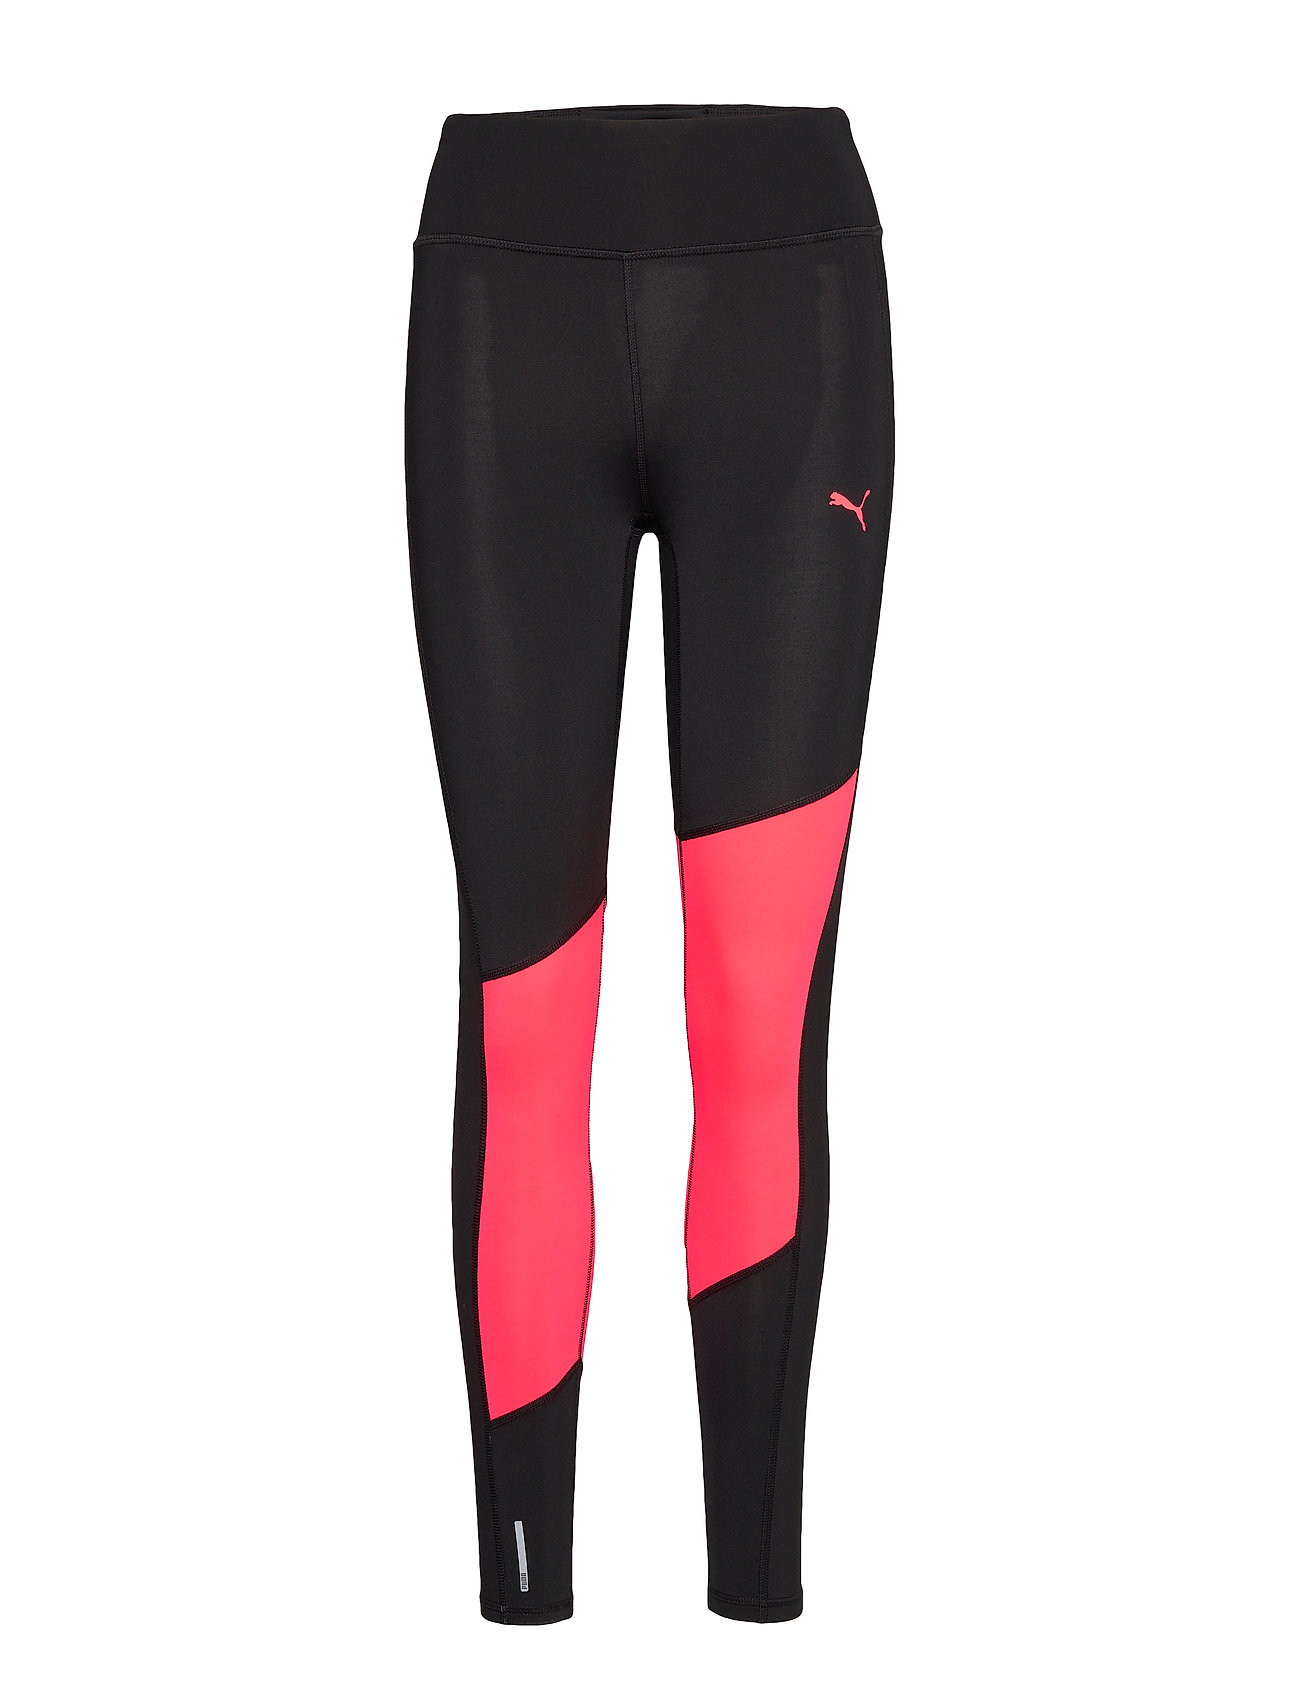 ny kollektion snabb leverans senaste rabatt Always On Solid 7/8 Tight (Puma Black-ignite Pink) (37.50 ...